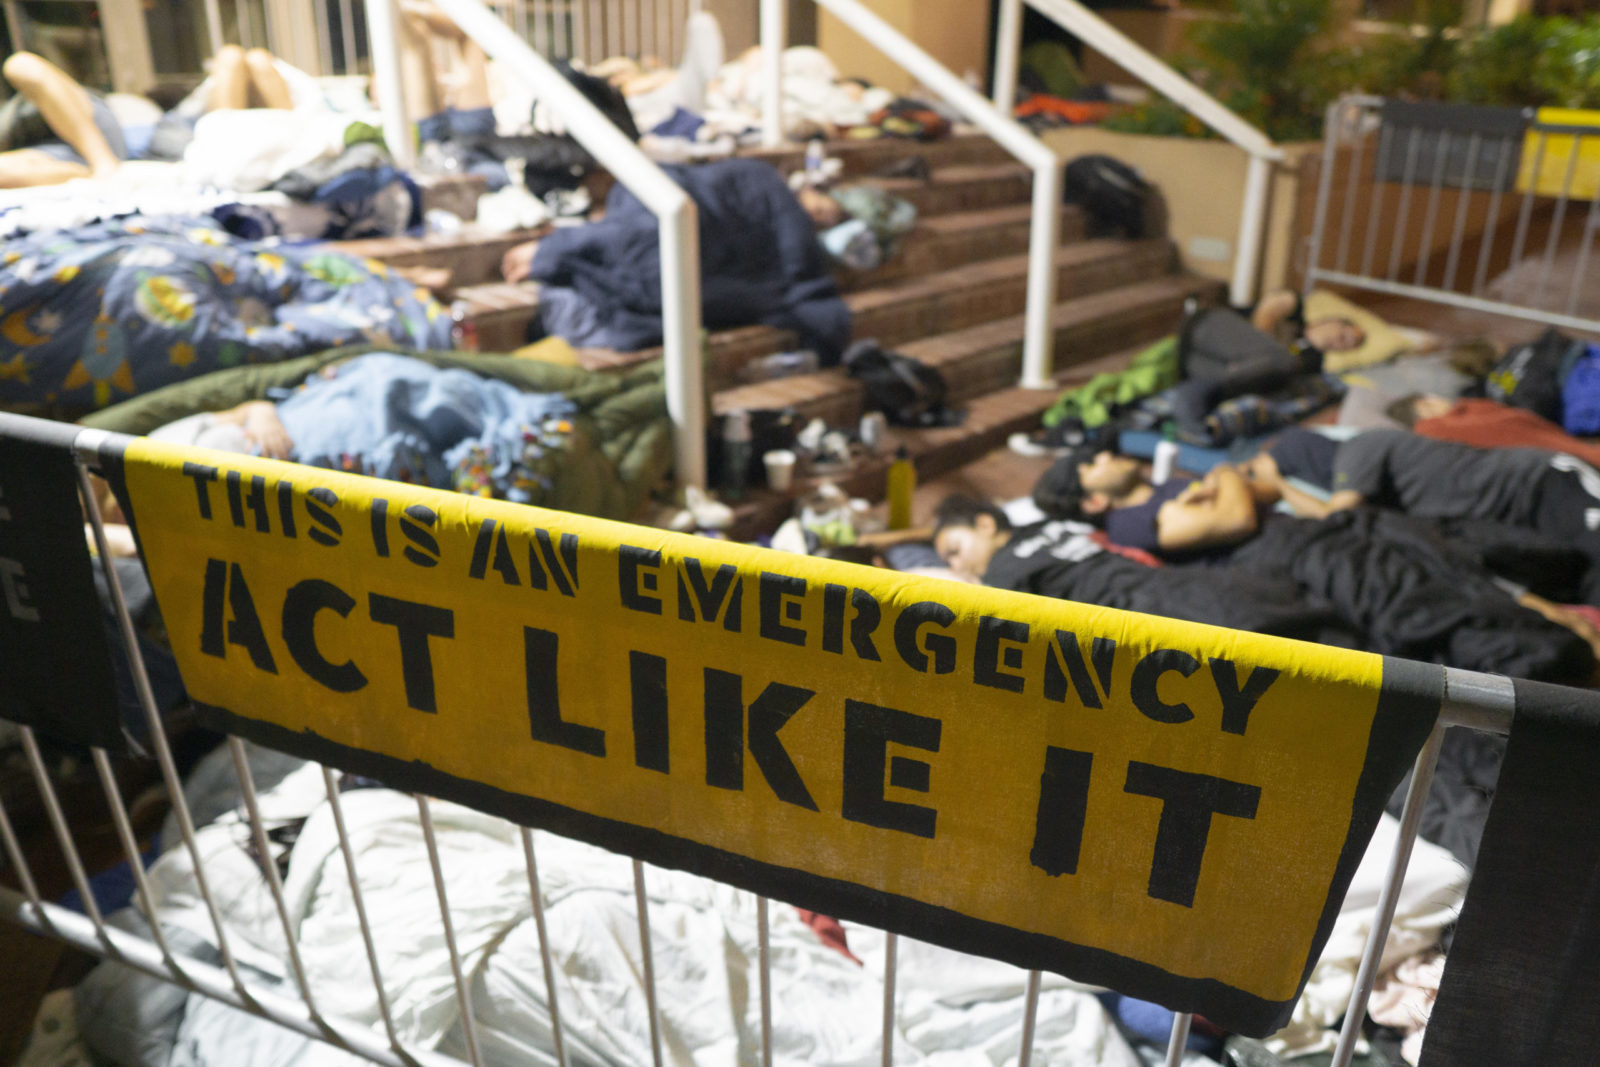 """A """"This Is An Emergency. Act Like It"""" banner is in the foreground as activists camp overnight outside the DNC headquarters in DC."""